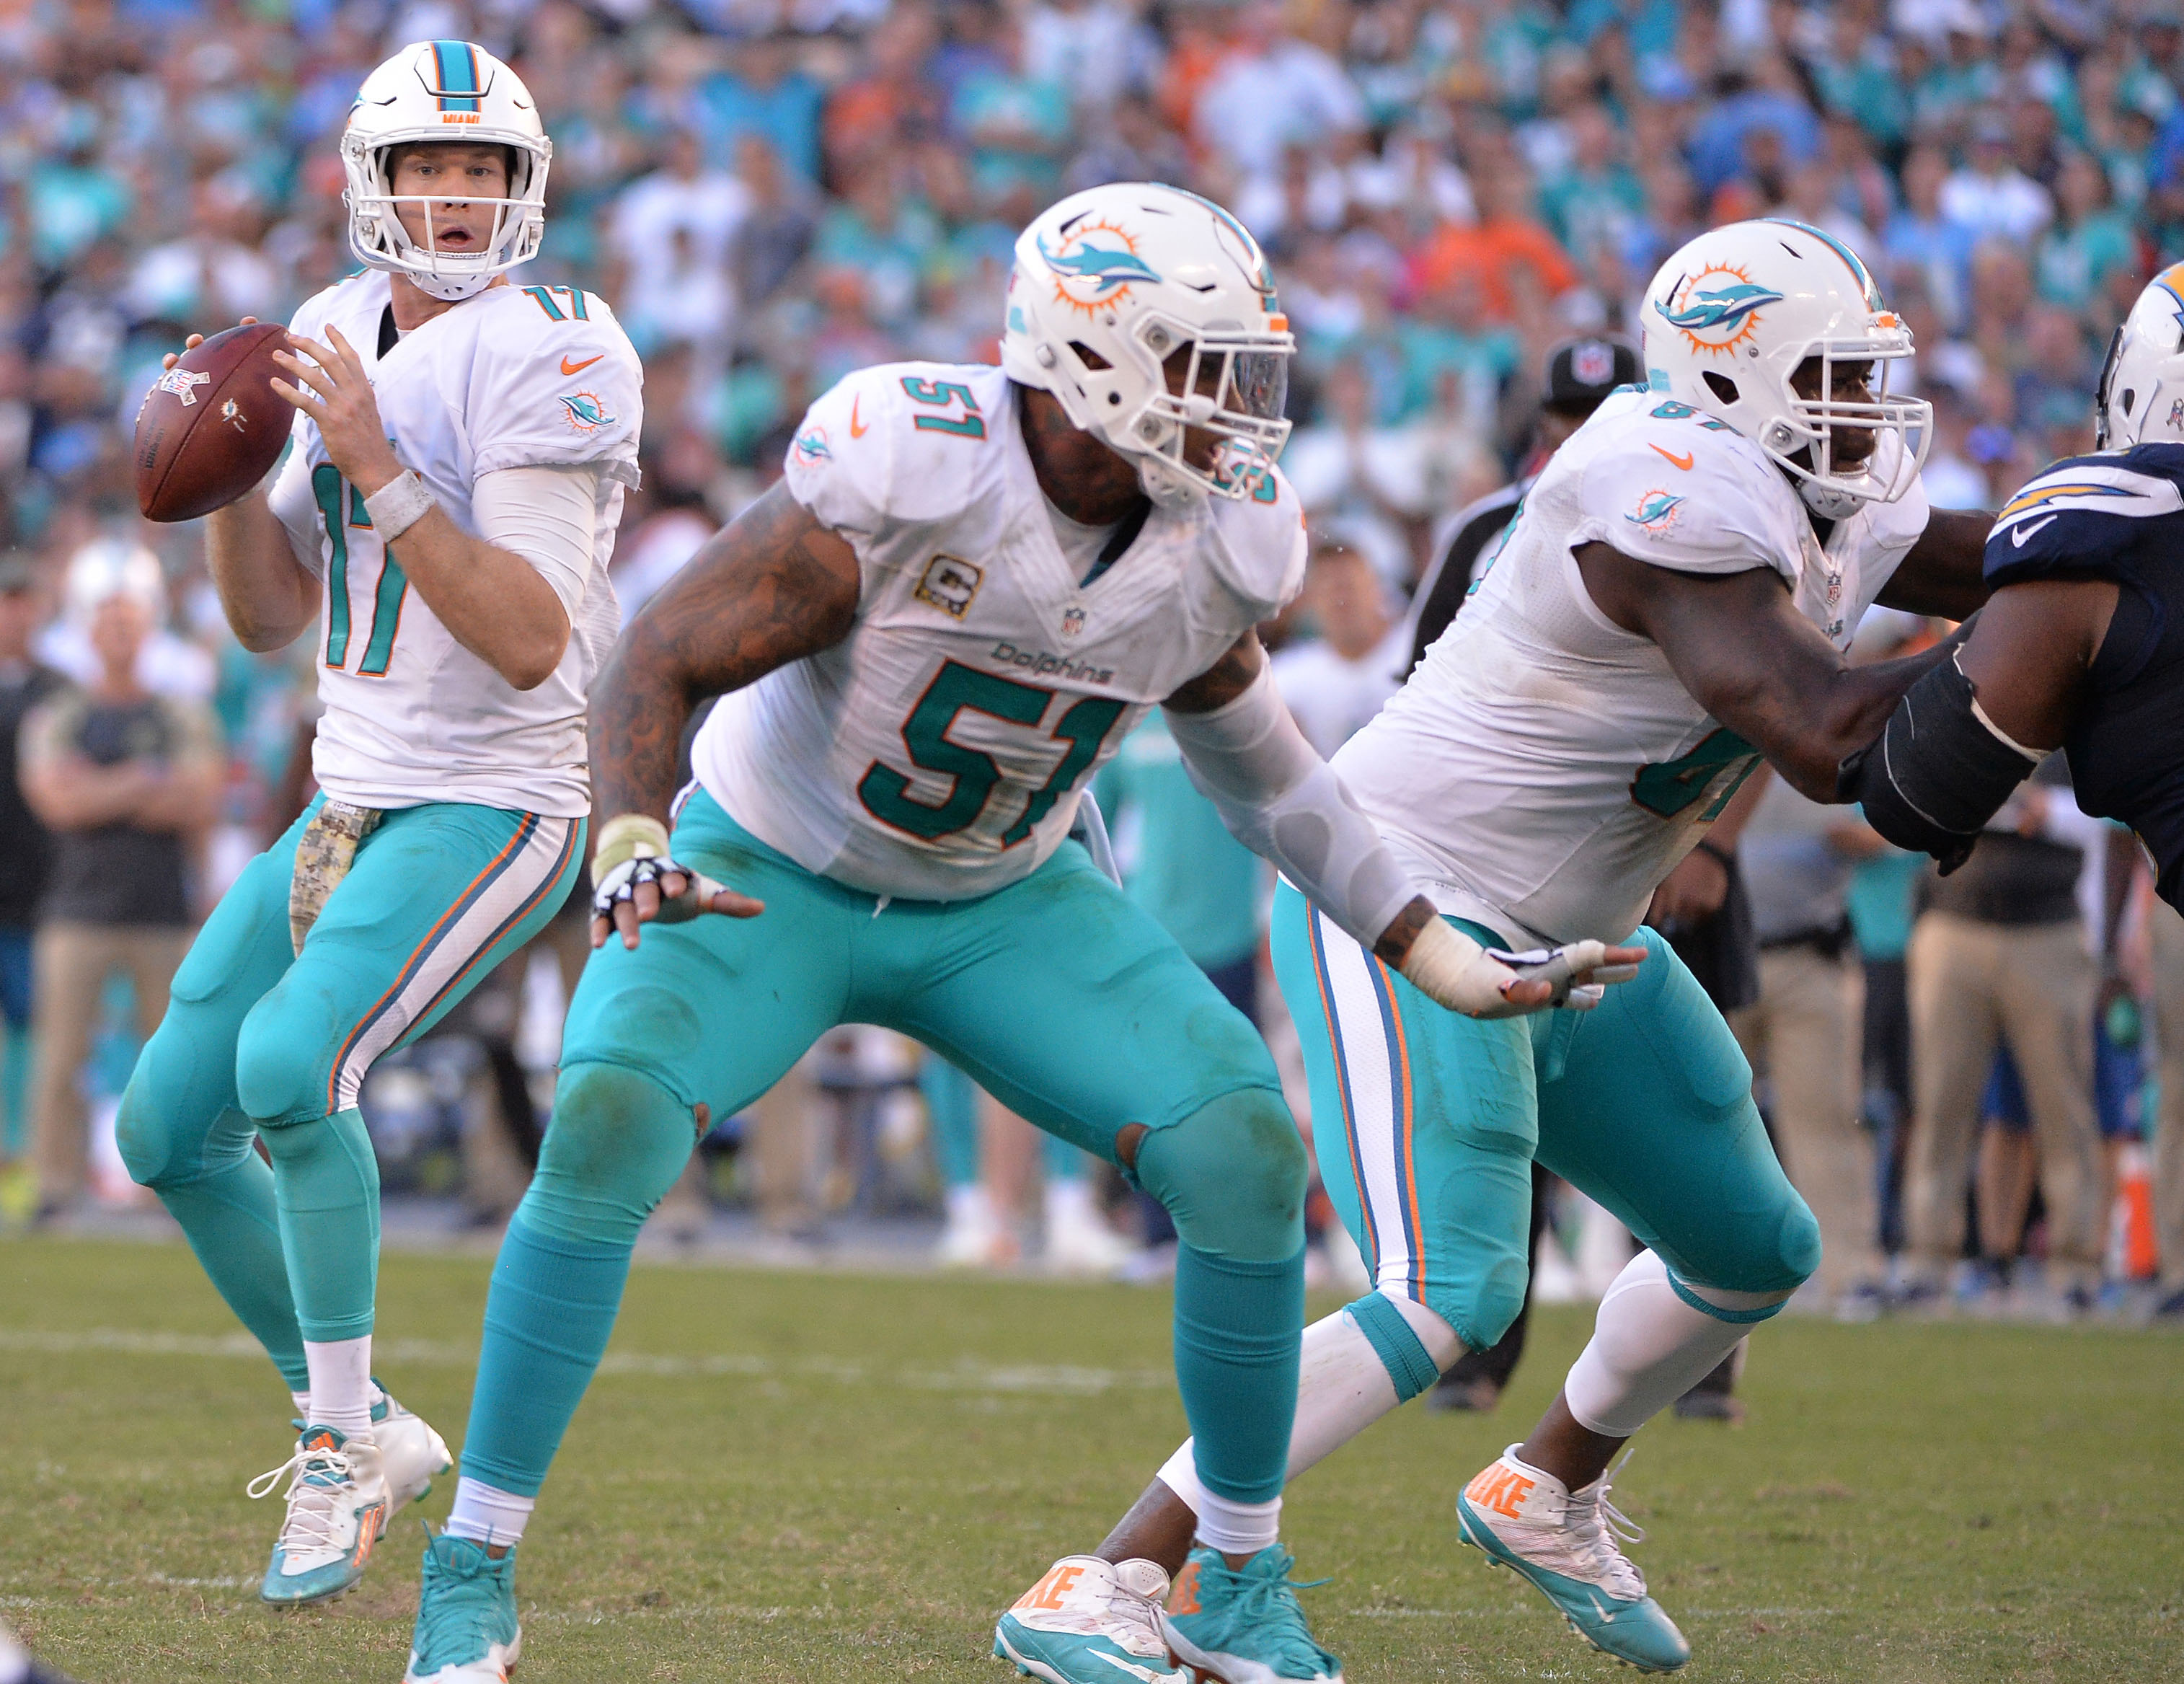 9683355-nfl-miami-dolphins-at-san-diego-chargers